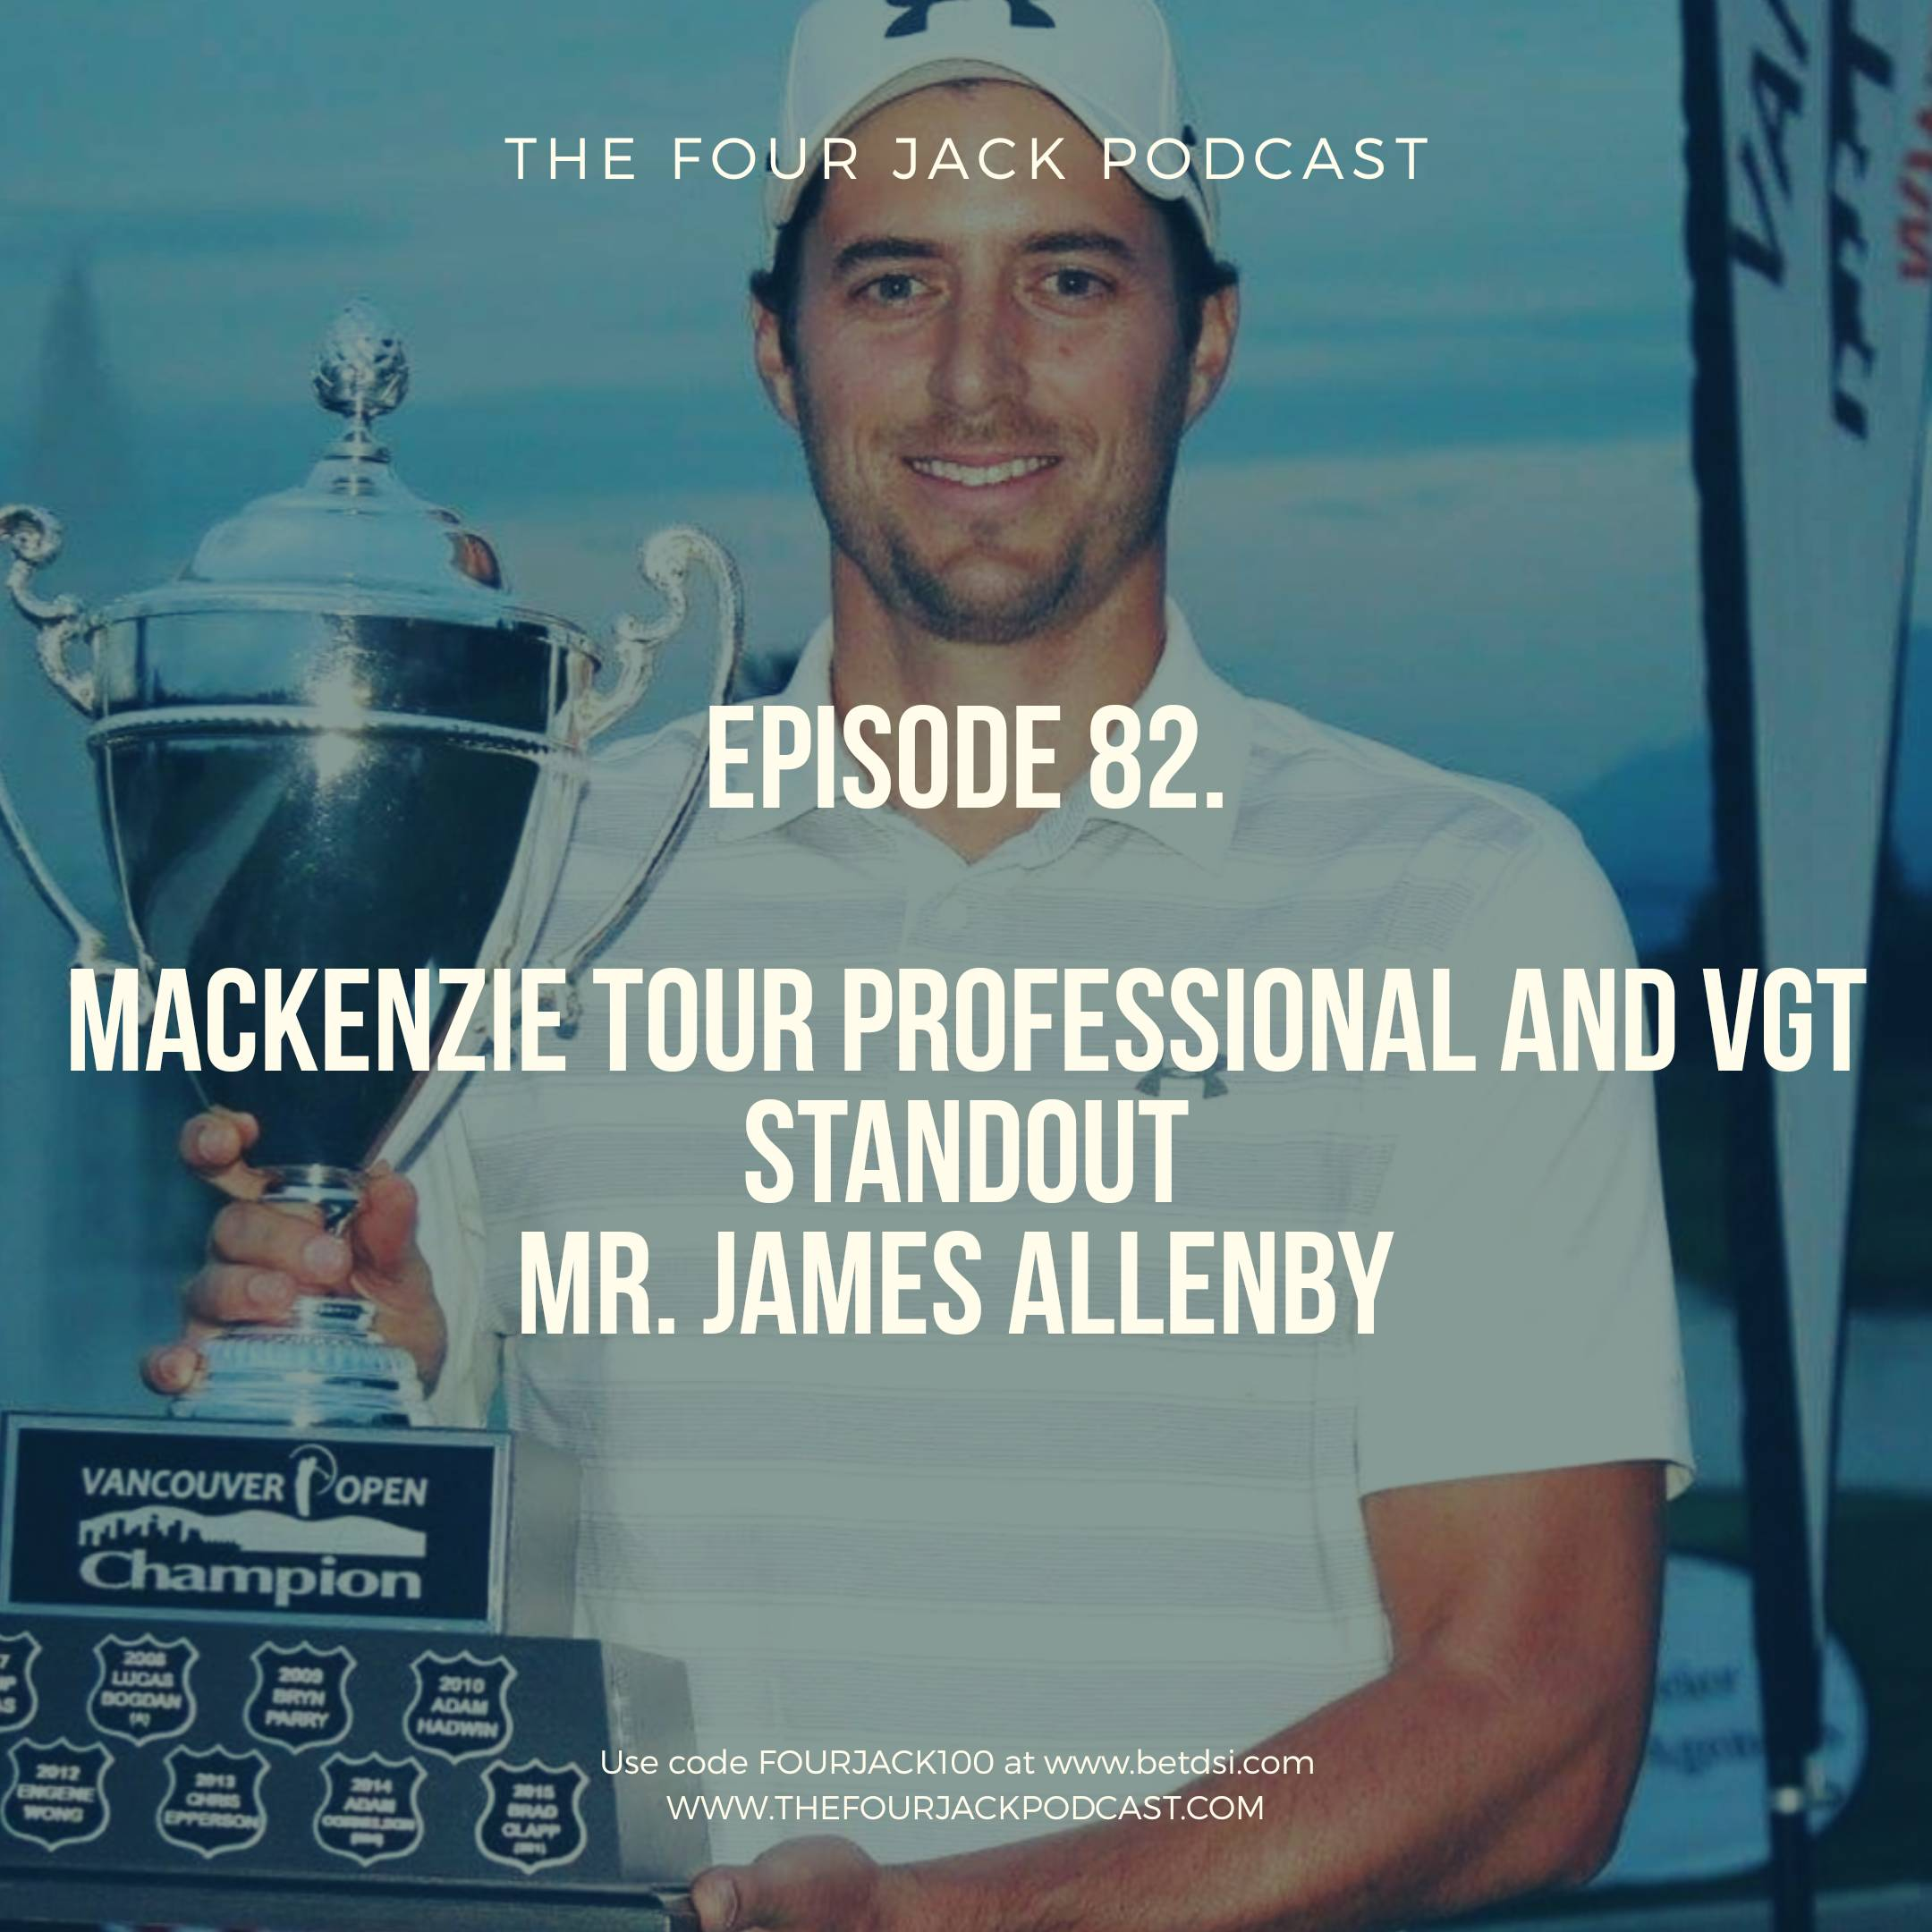 Episode 83. Mackenzie Tour Professional, James Allenby